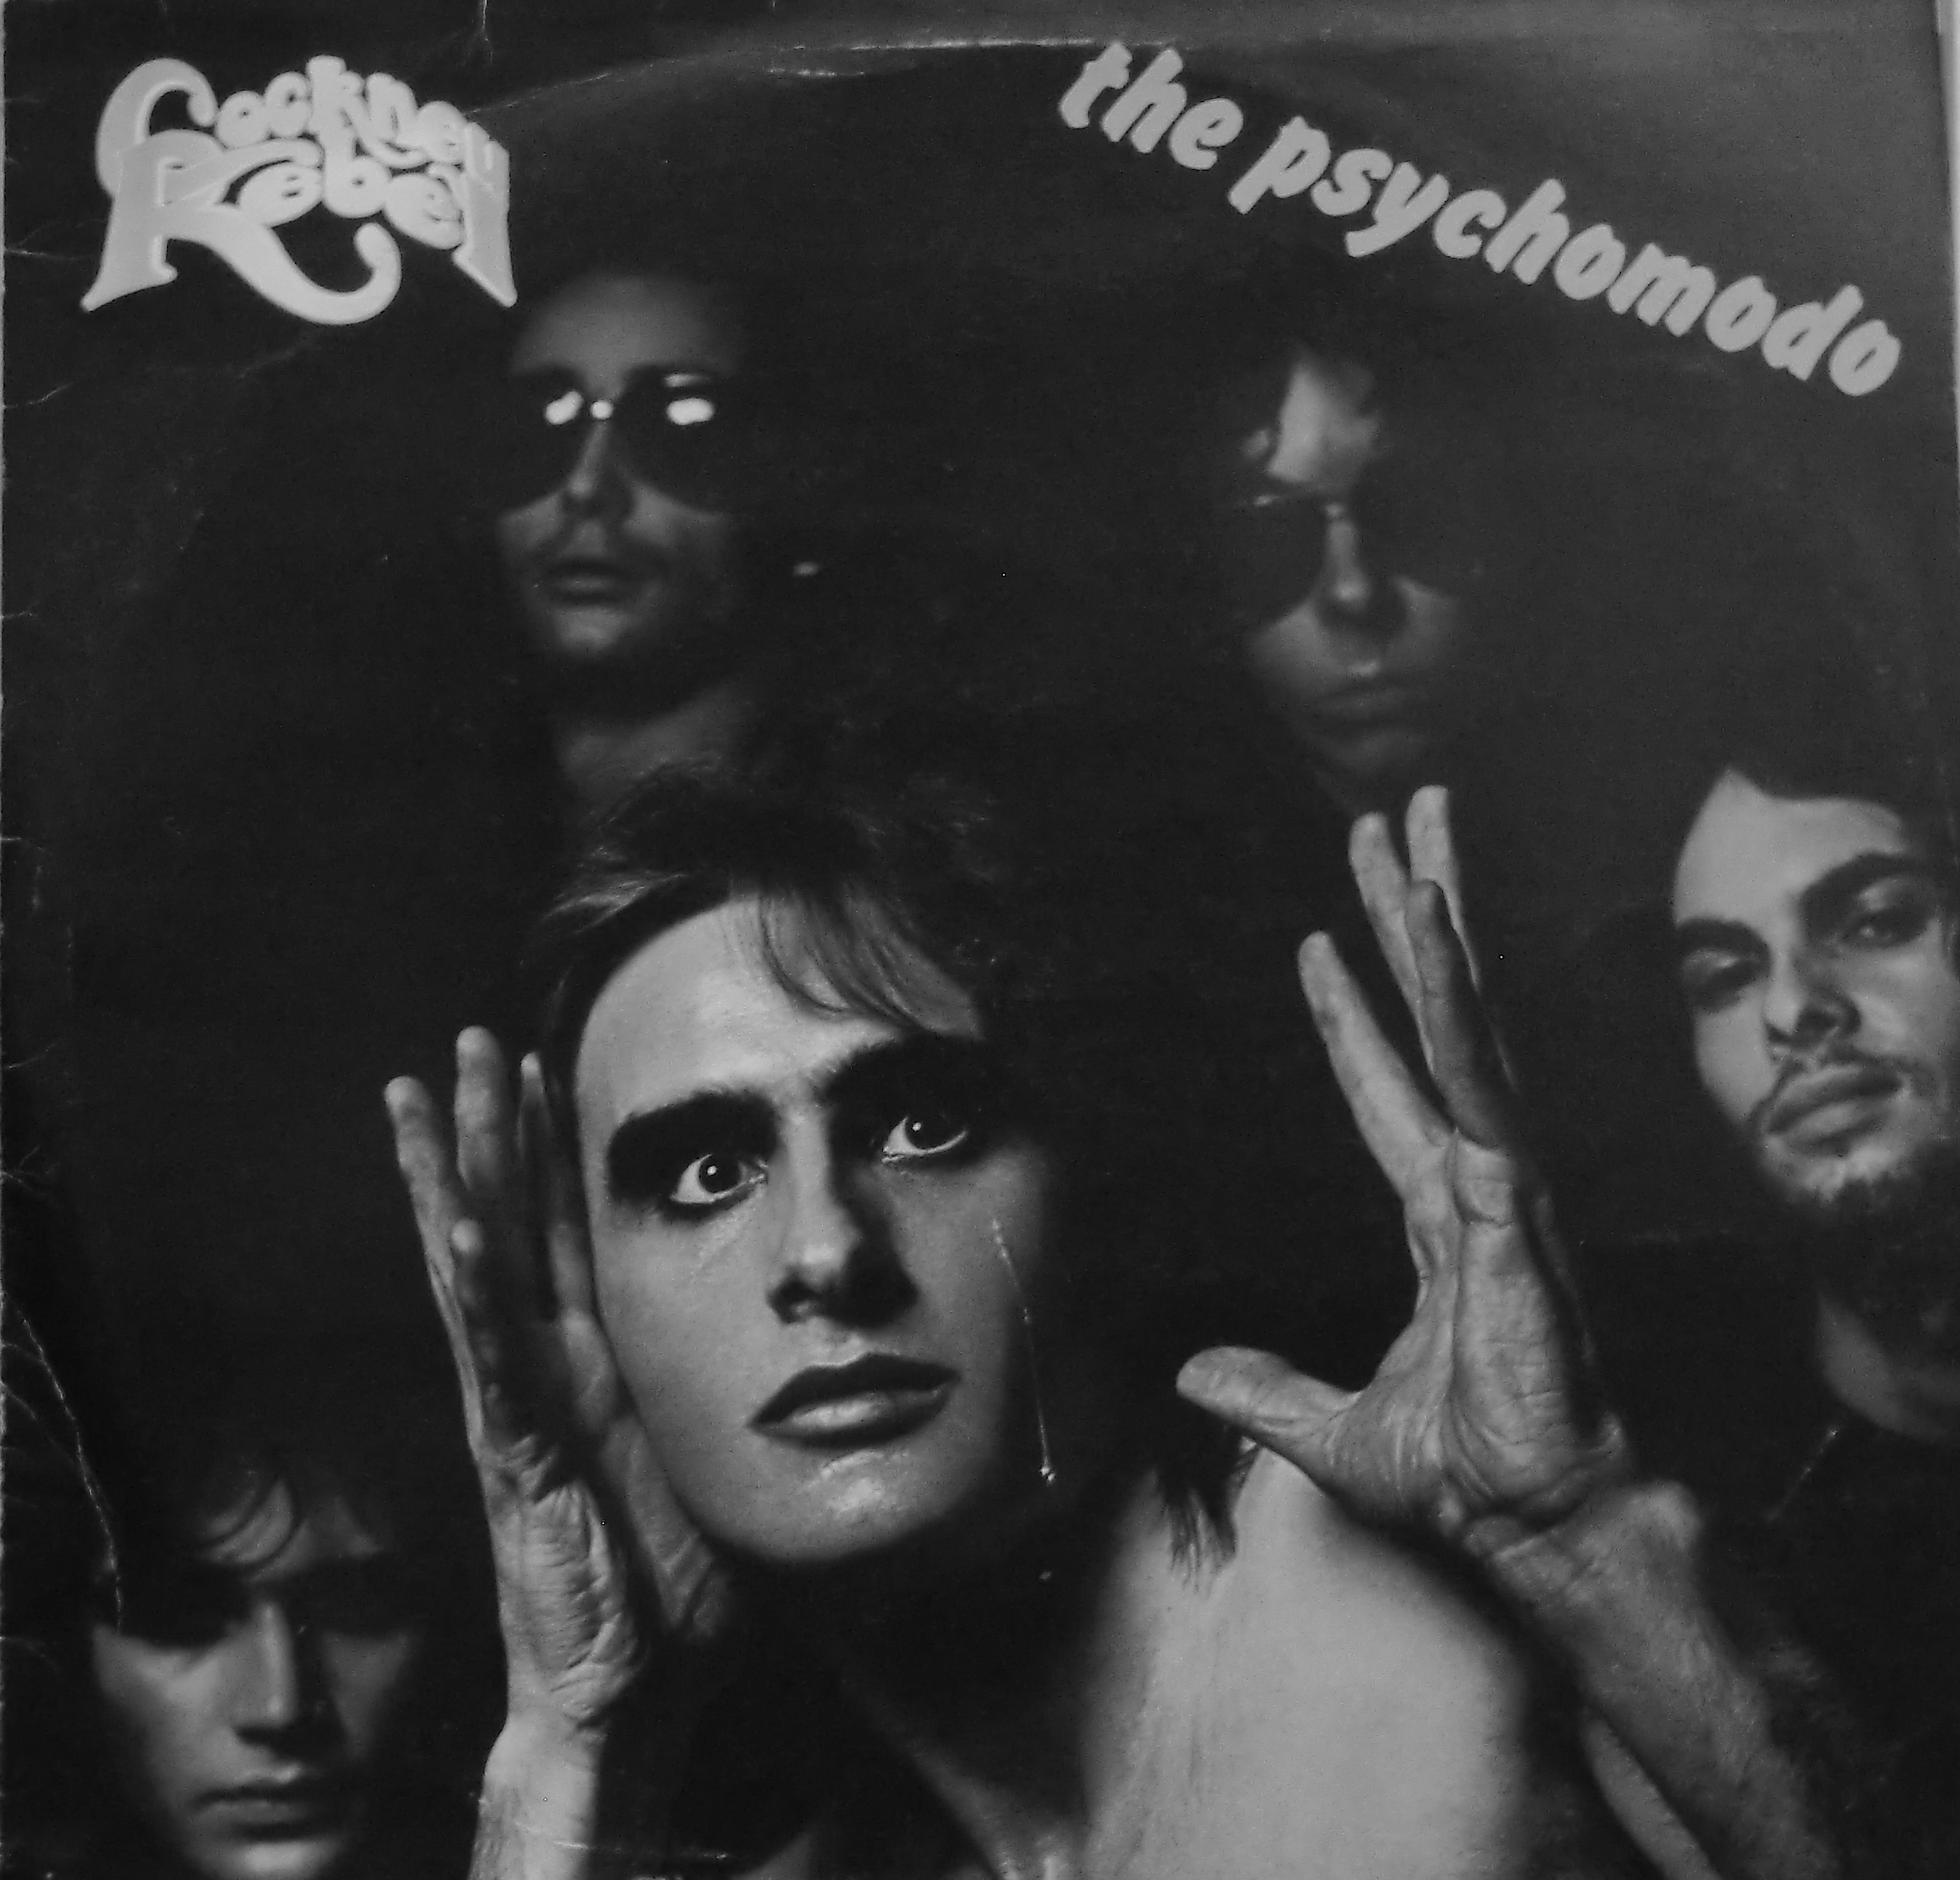 cockney-rebel-the-psychomodo-cover-1974